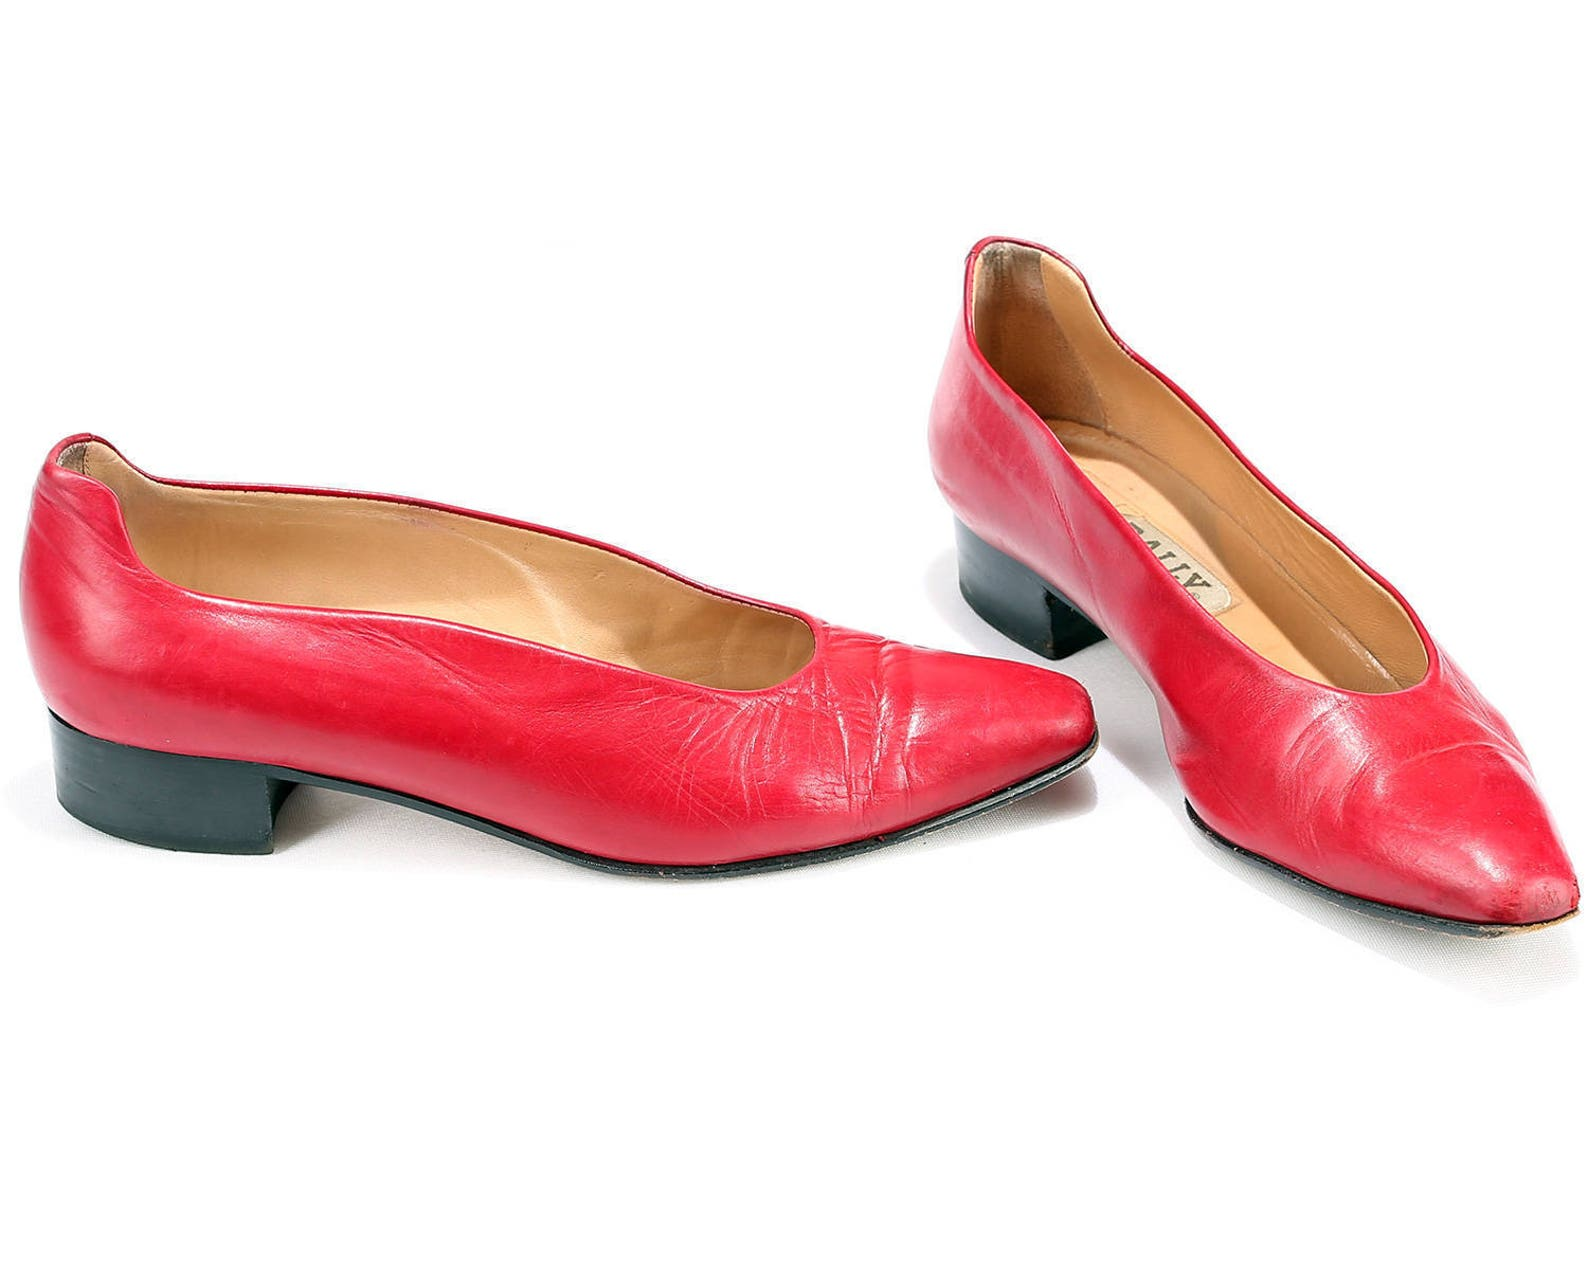 size 6.5 red ballet shoes 80s leather mod low heel slip on european quality bally burgundy leather shoes 1980s eur 37 , us 6.5 ,